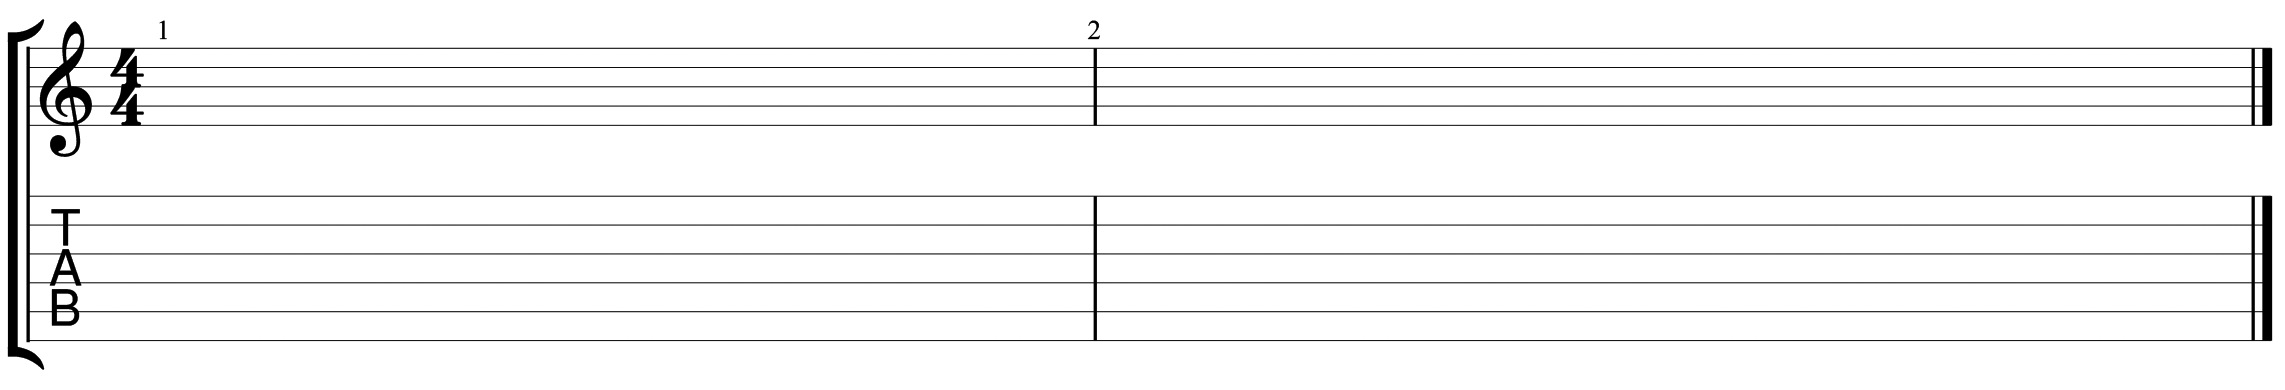 How to read guitar tab 1